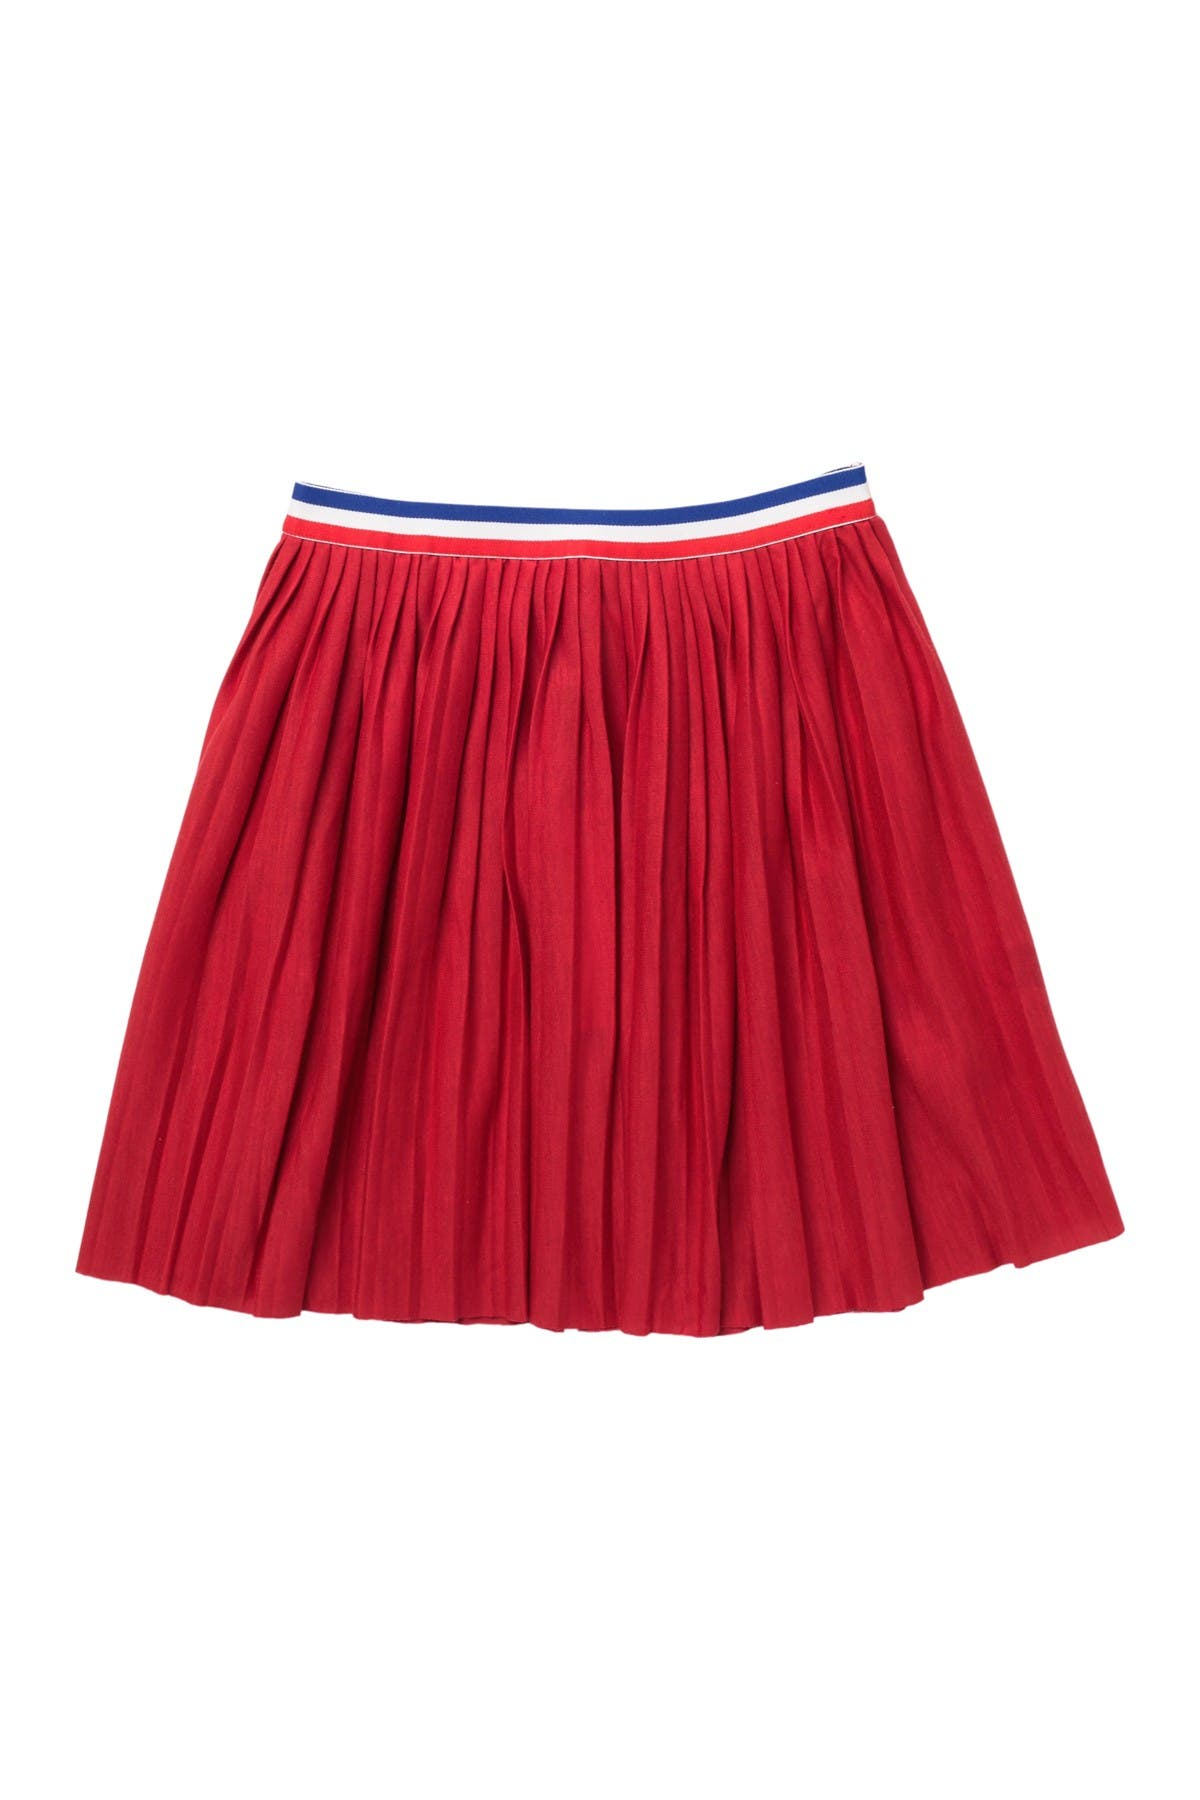 Image of BCBGirls Pleated Skirt